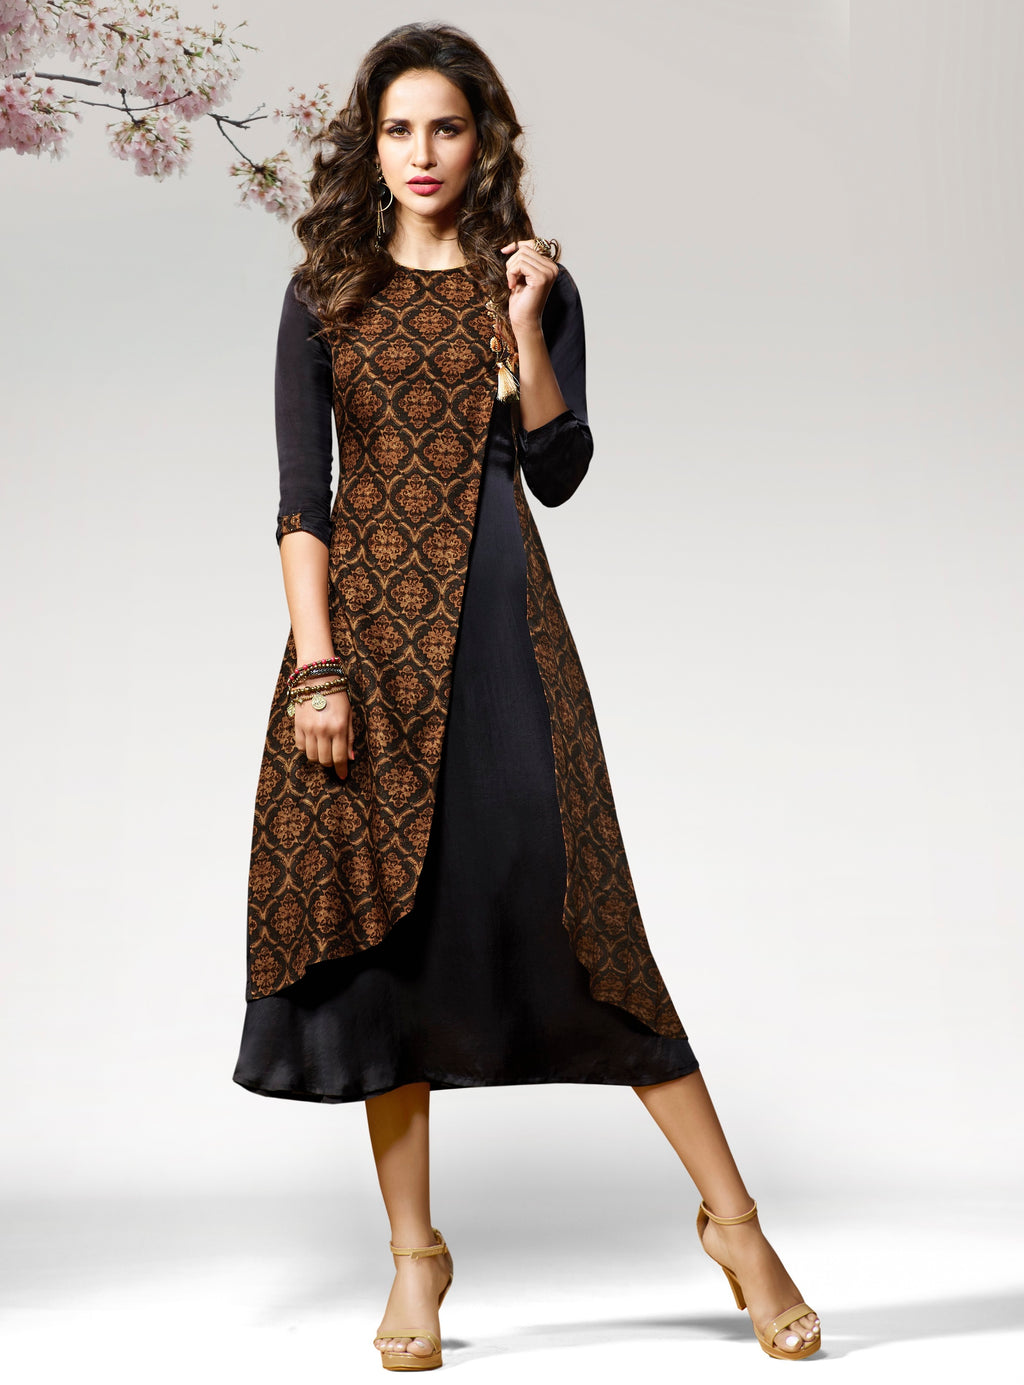 Black Color Silk & Crepe Readymade Party Wear Kurtis ( Sizes - 38,40) Vinay TumbaTwinkle Catlog SJ-10460